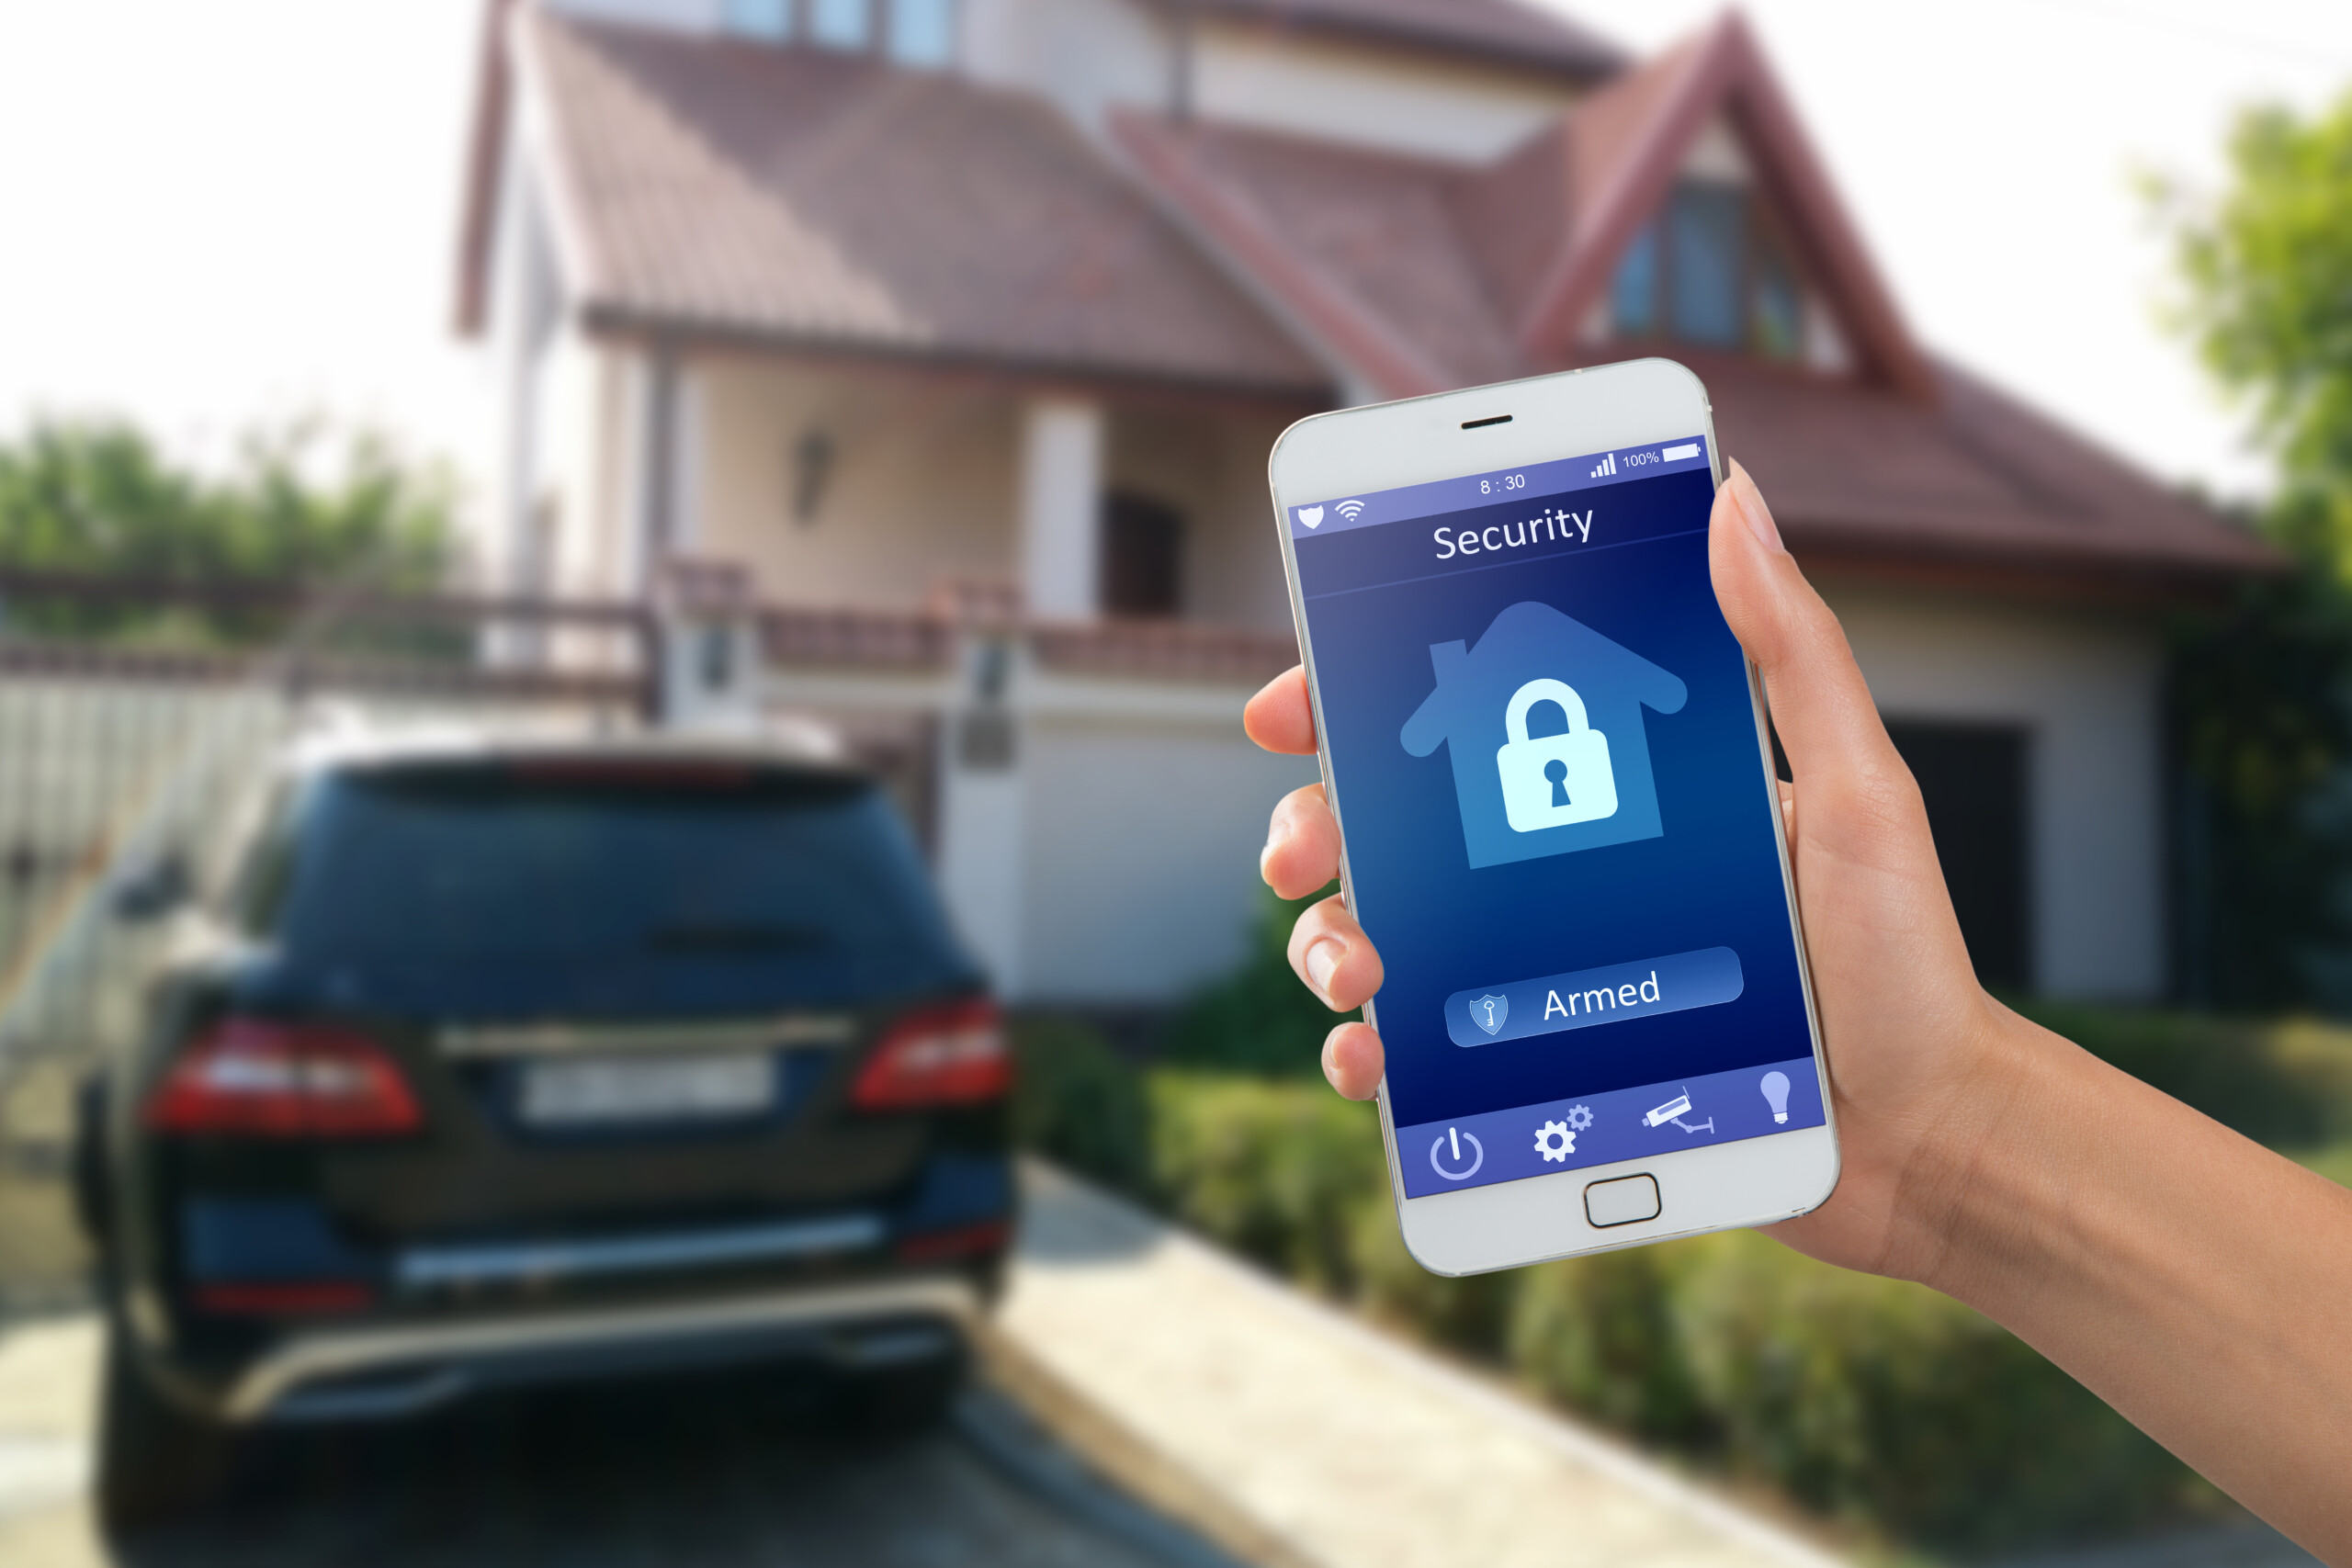 Keep Your Home More Secure With These 21 Tips